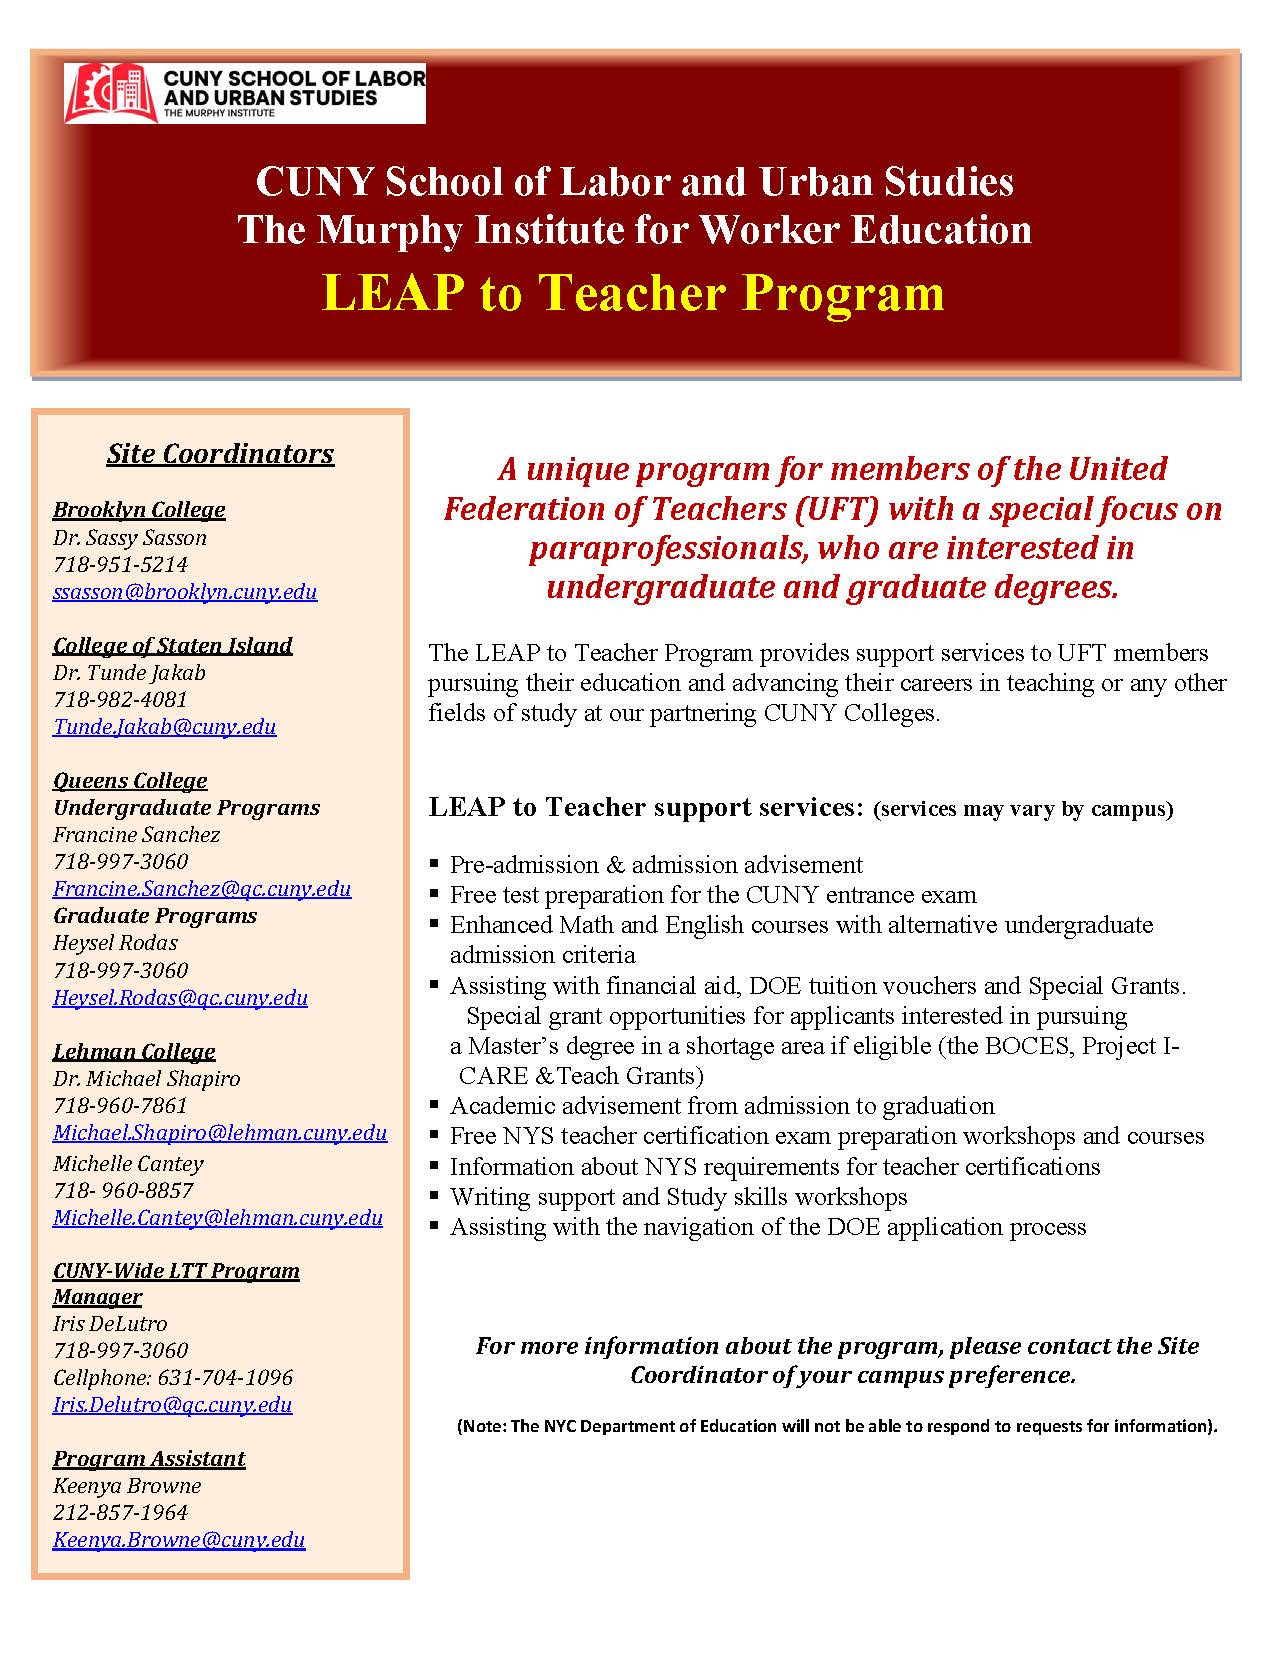 Fall 2018 Open House The Murphy Institute Leap To Teacher And